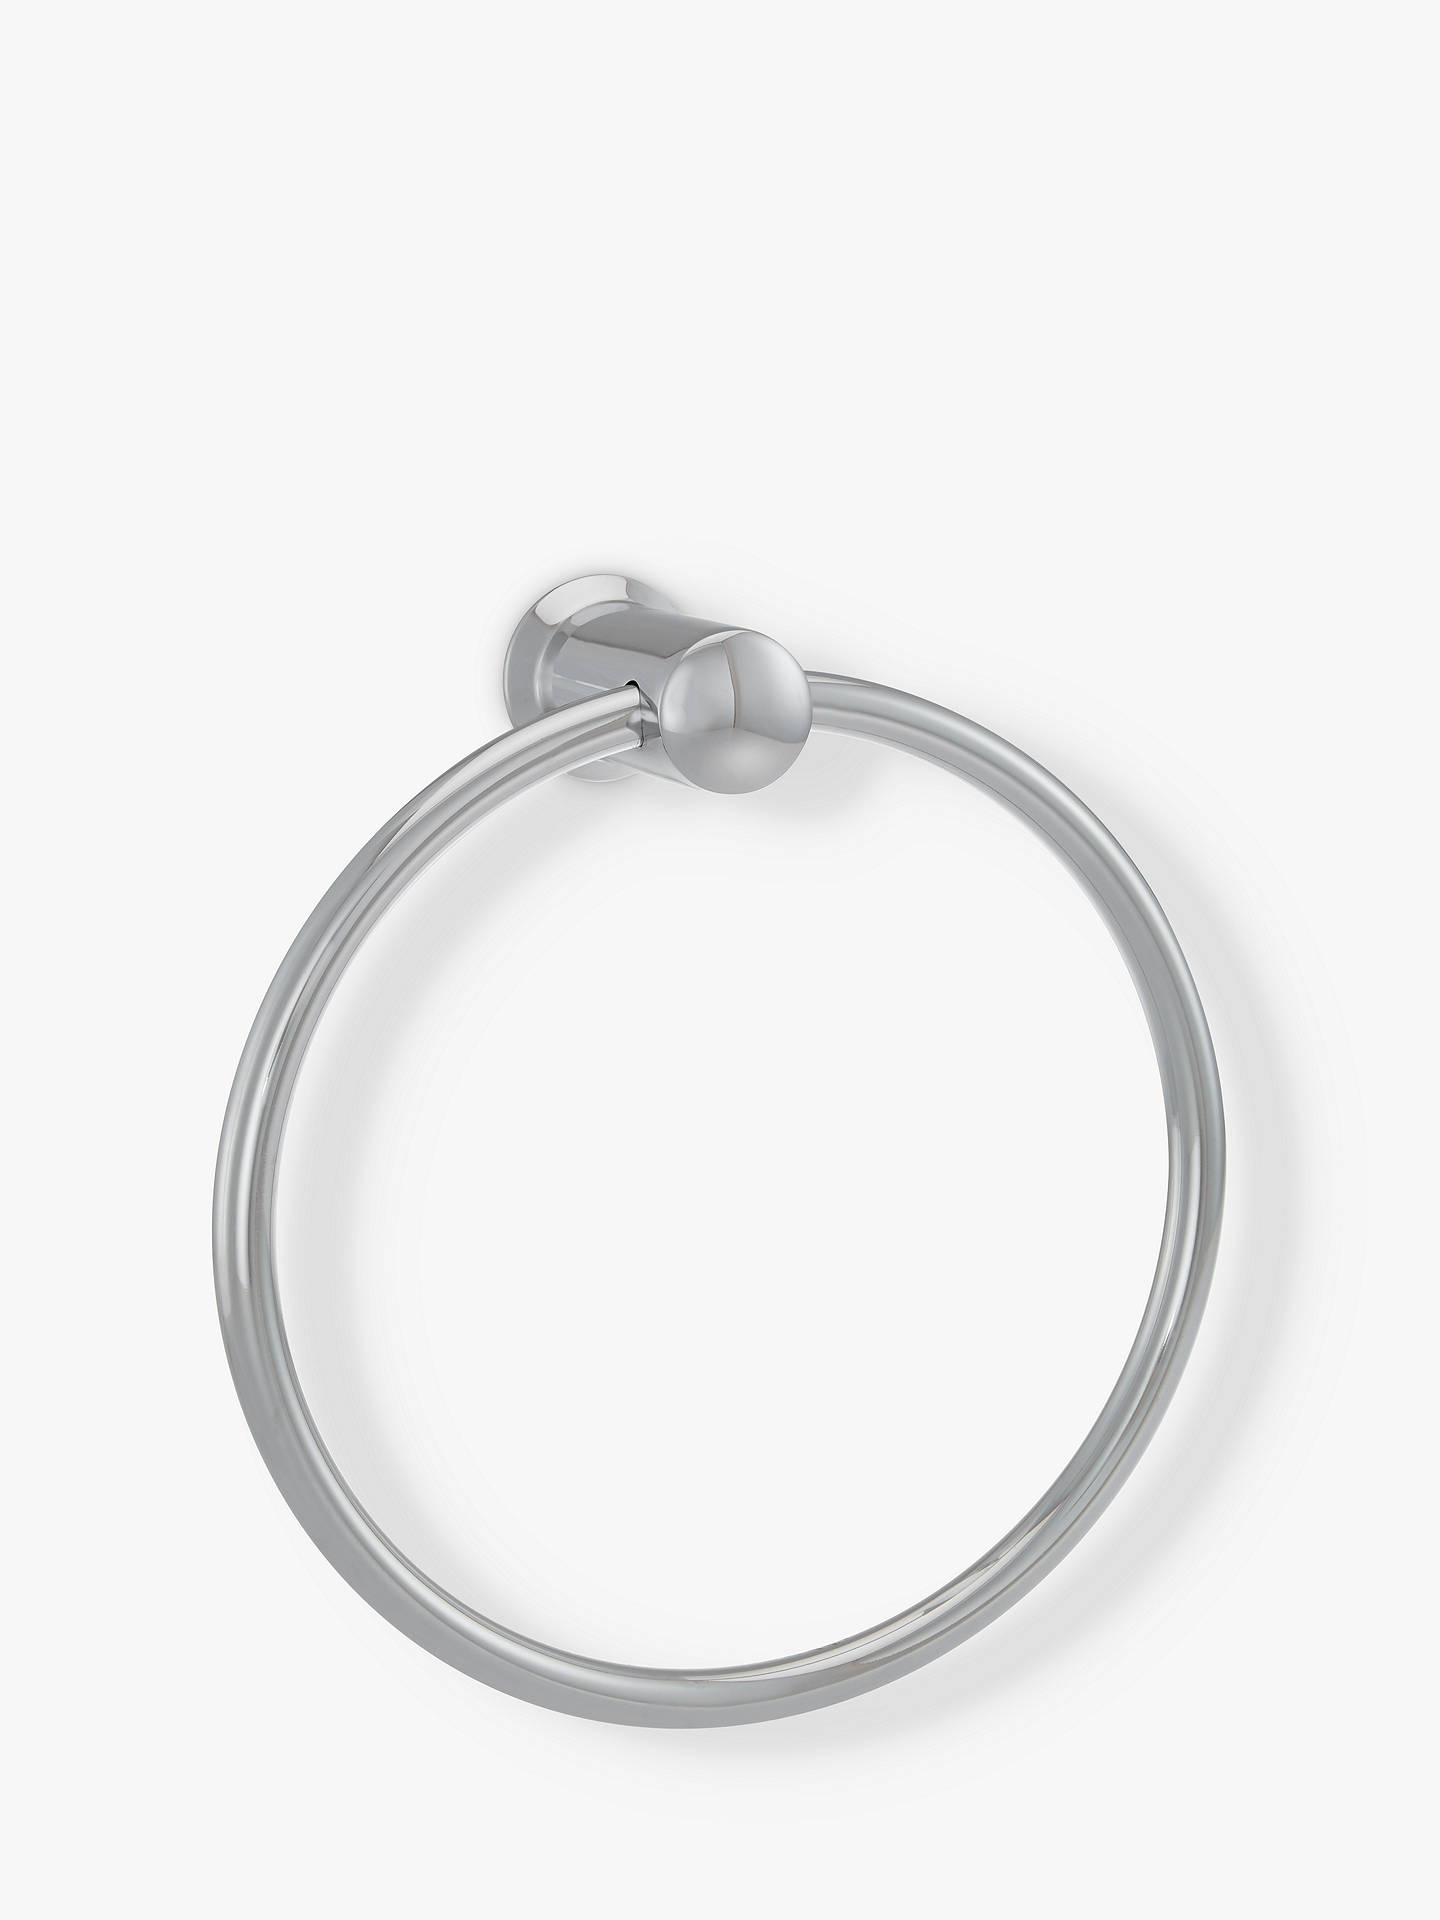 Buy Croft Collection Skye Swing Towel Ring Online at johnlewis.com